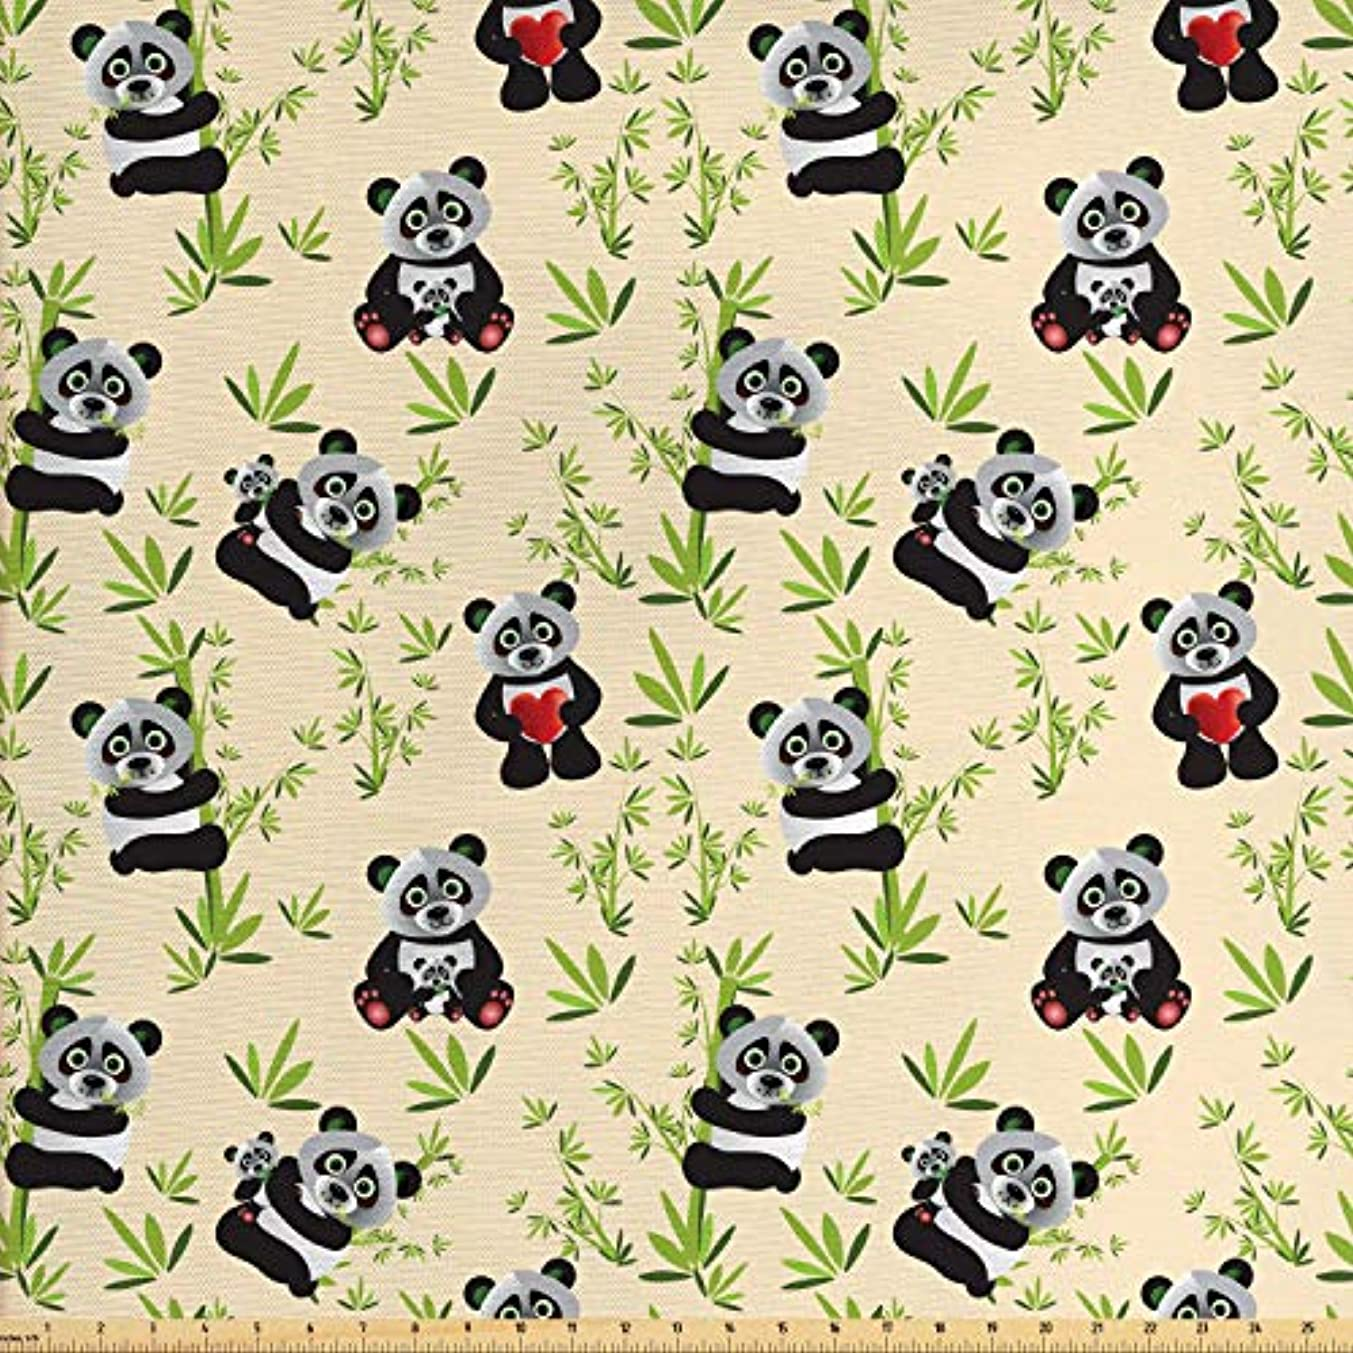 Lunarable Panda Fabric by The Yard, Big Asian Bamboo Eating Bear Chinese Cartoon Mother and Baby Wildlife, Decorative Fabric for Upholstery and Home Accents, 3 Yards, Ivory Apple Green Black